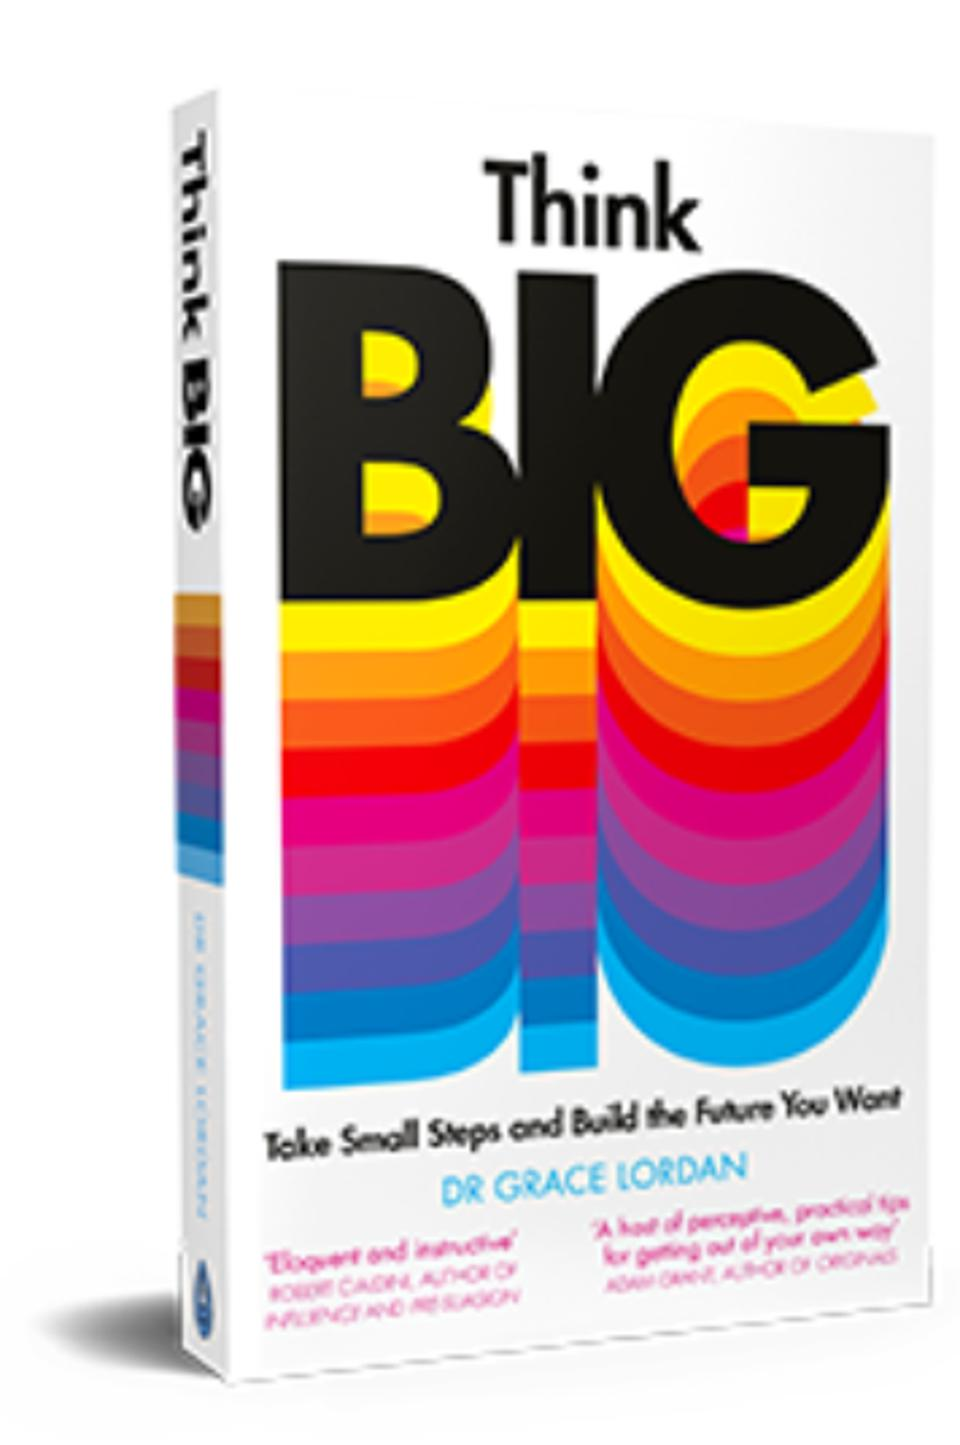 Think Big, a new book by Dr. Grace Lordan provides a blueprint offering small steps that can lead to big career changes.